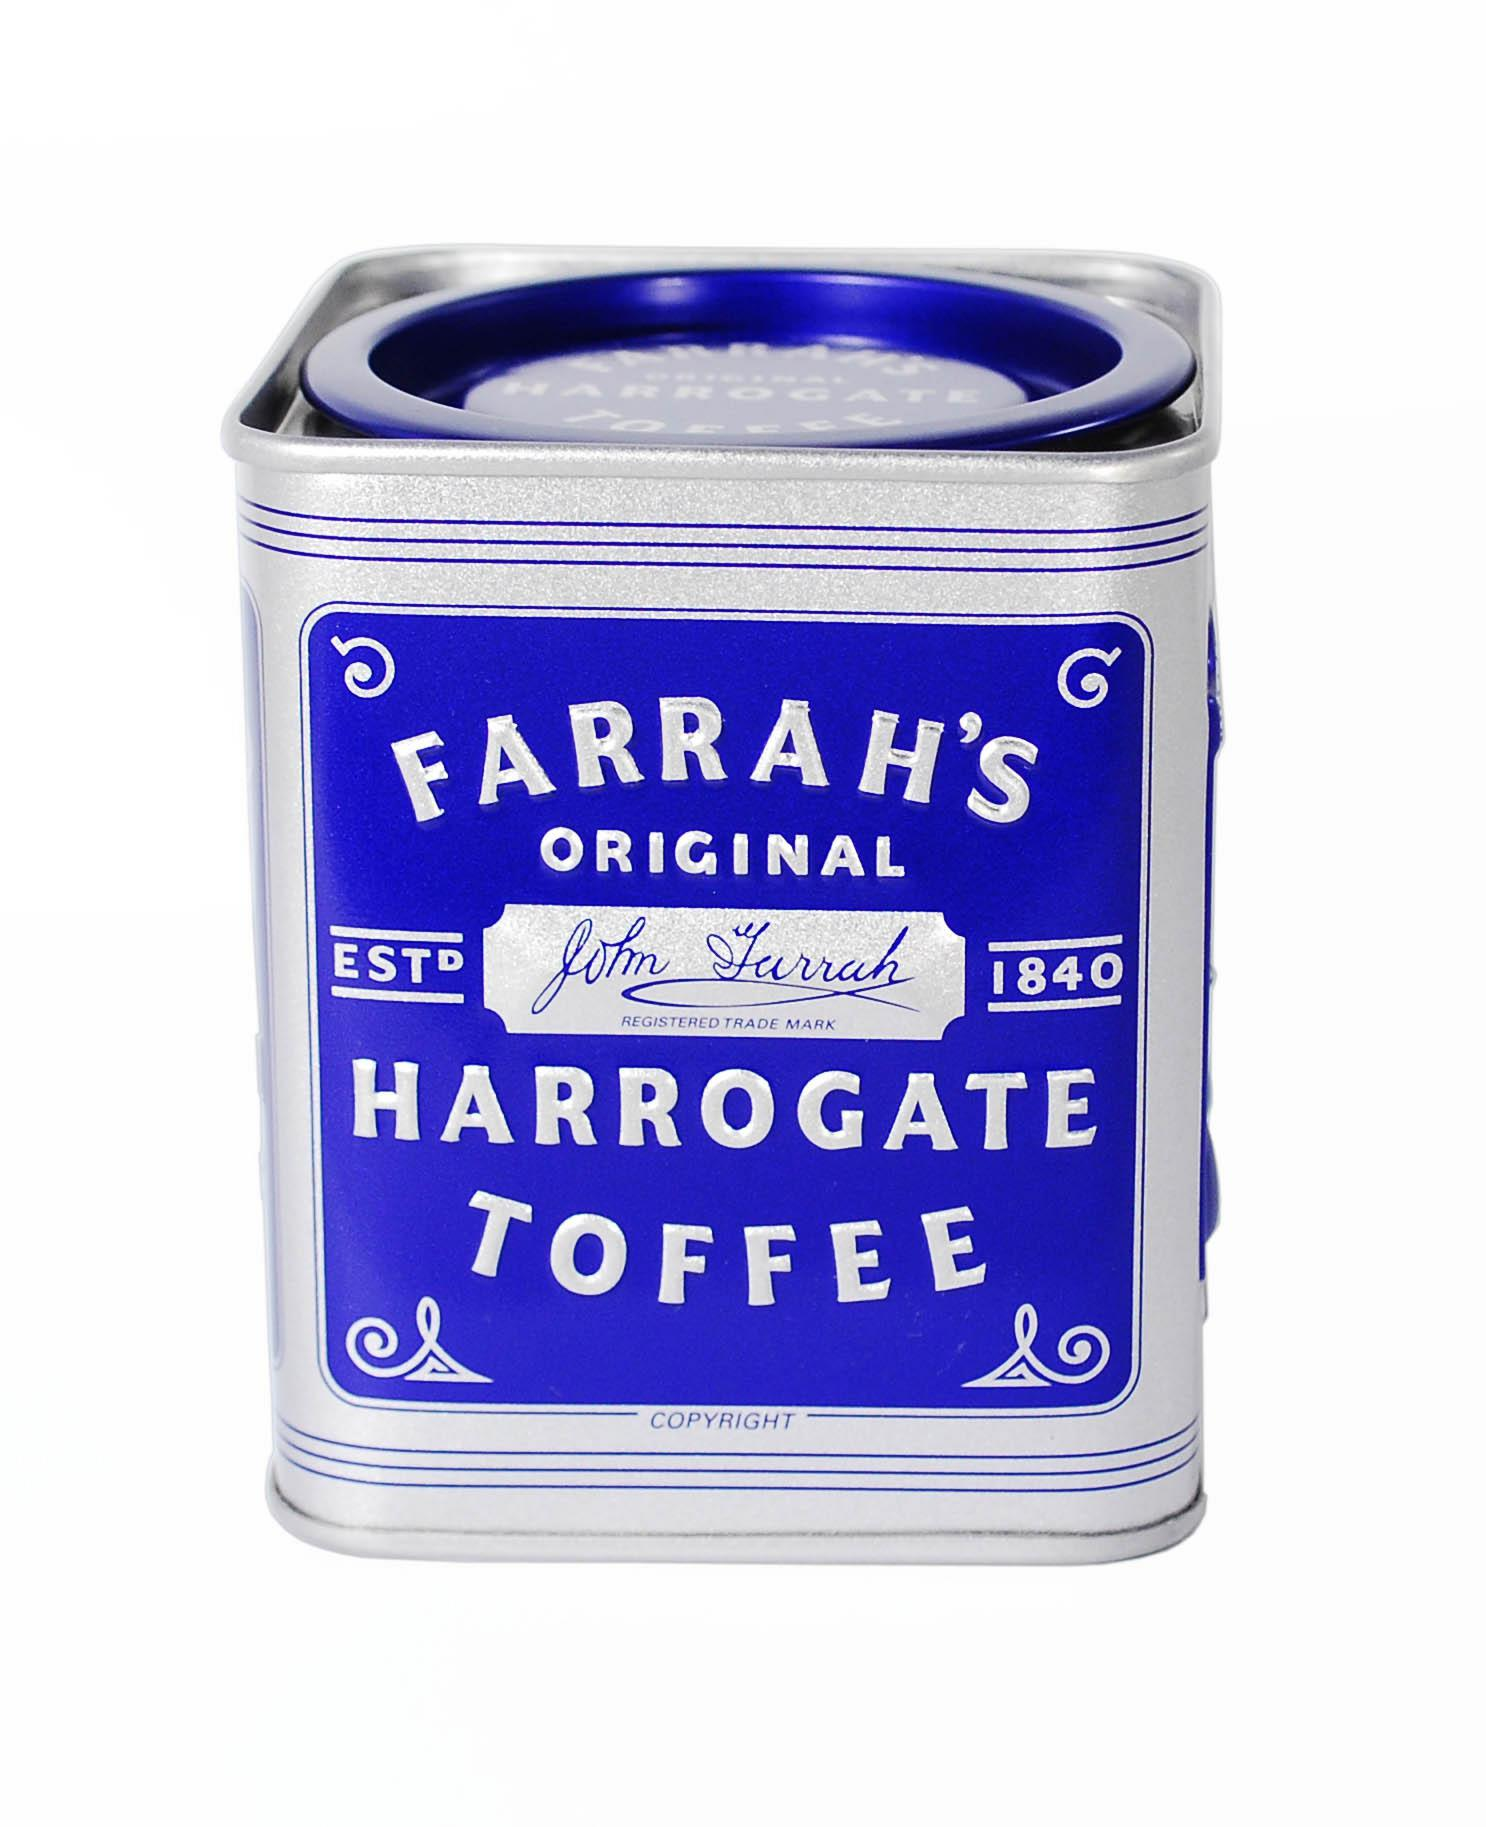 Farrah's of Harrogate Ltd